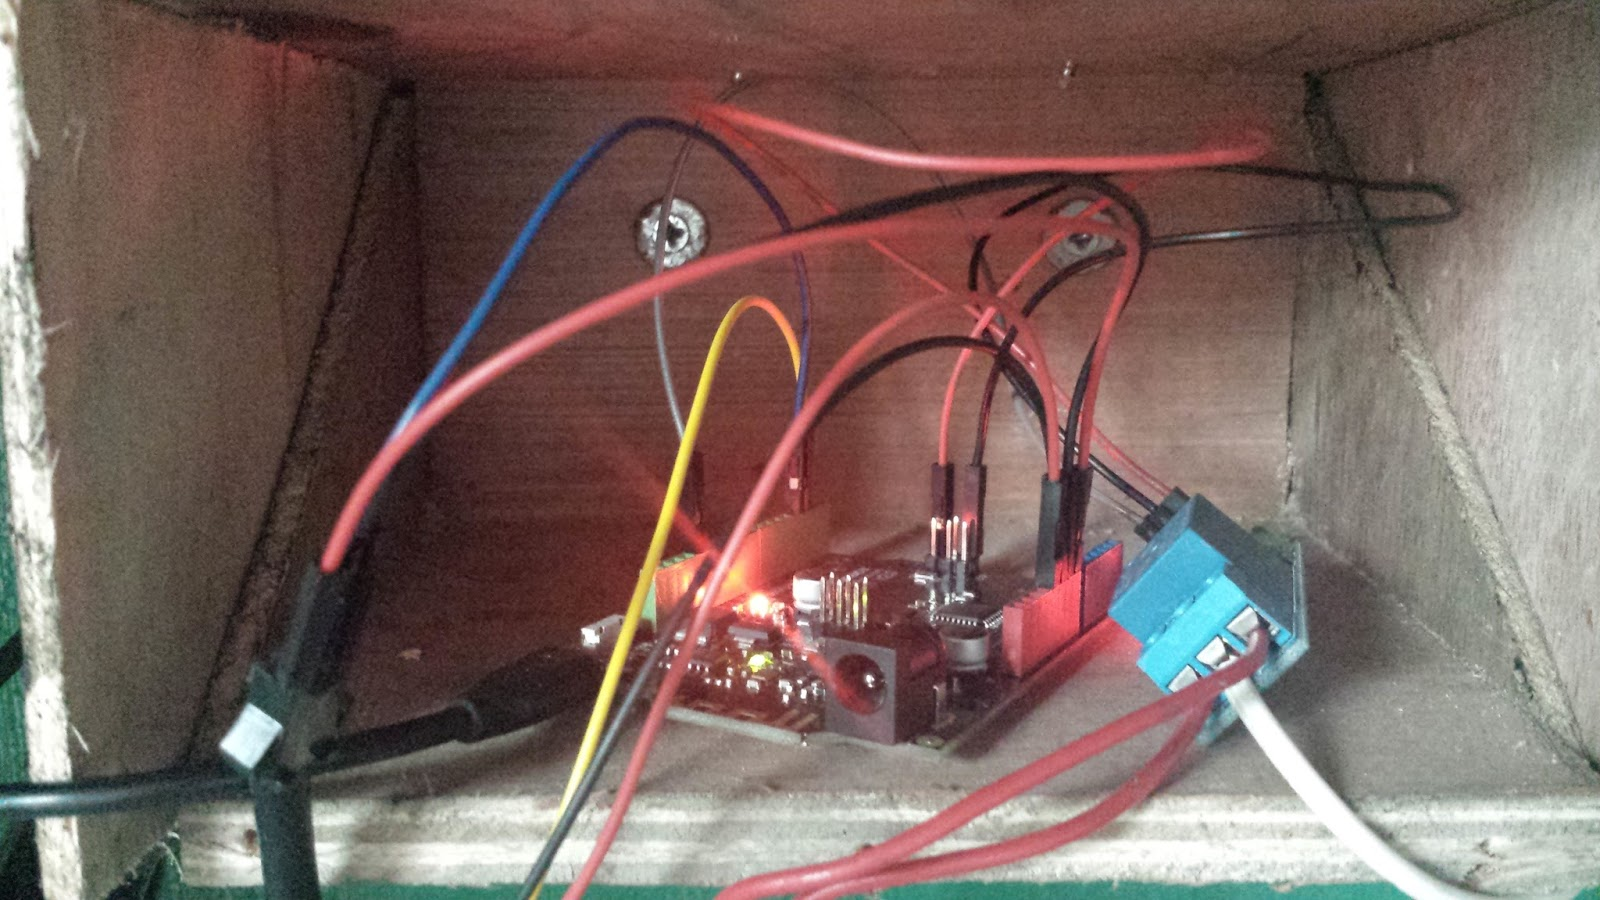 Crazy Happy Monkey Electrical Wiring The Flow Meters Directly Interface With Microcontroller While Solenoid Valves Are Connected To A Single Channel Relay Normally